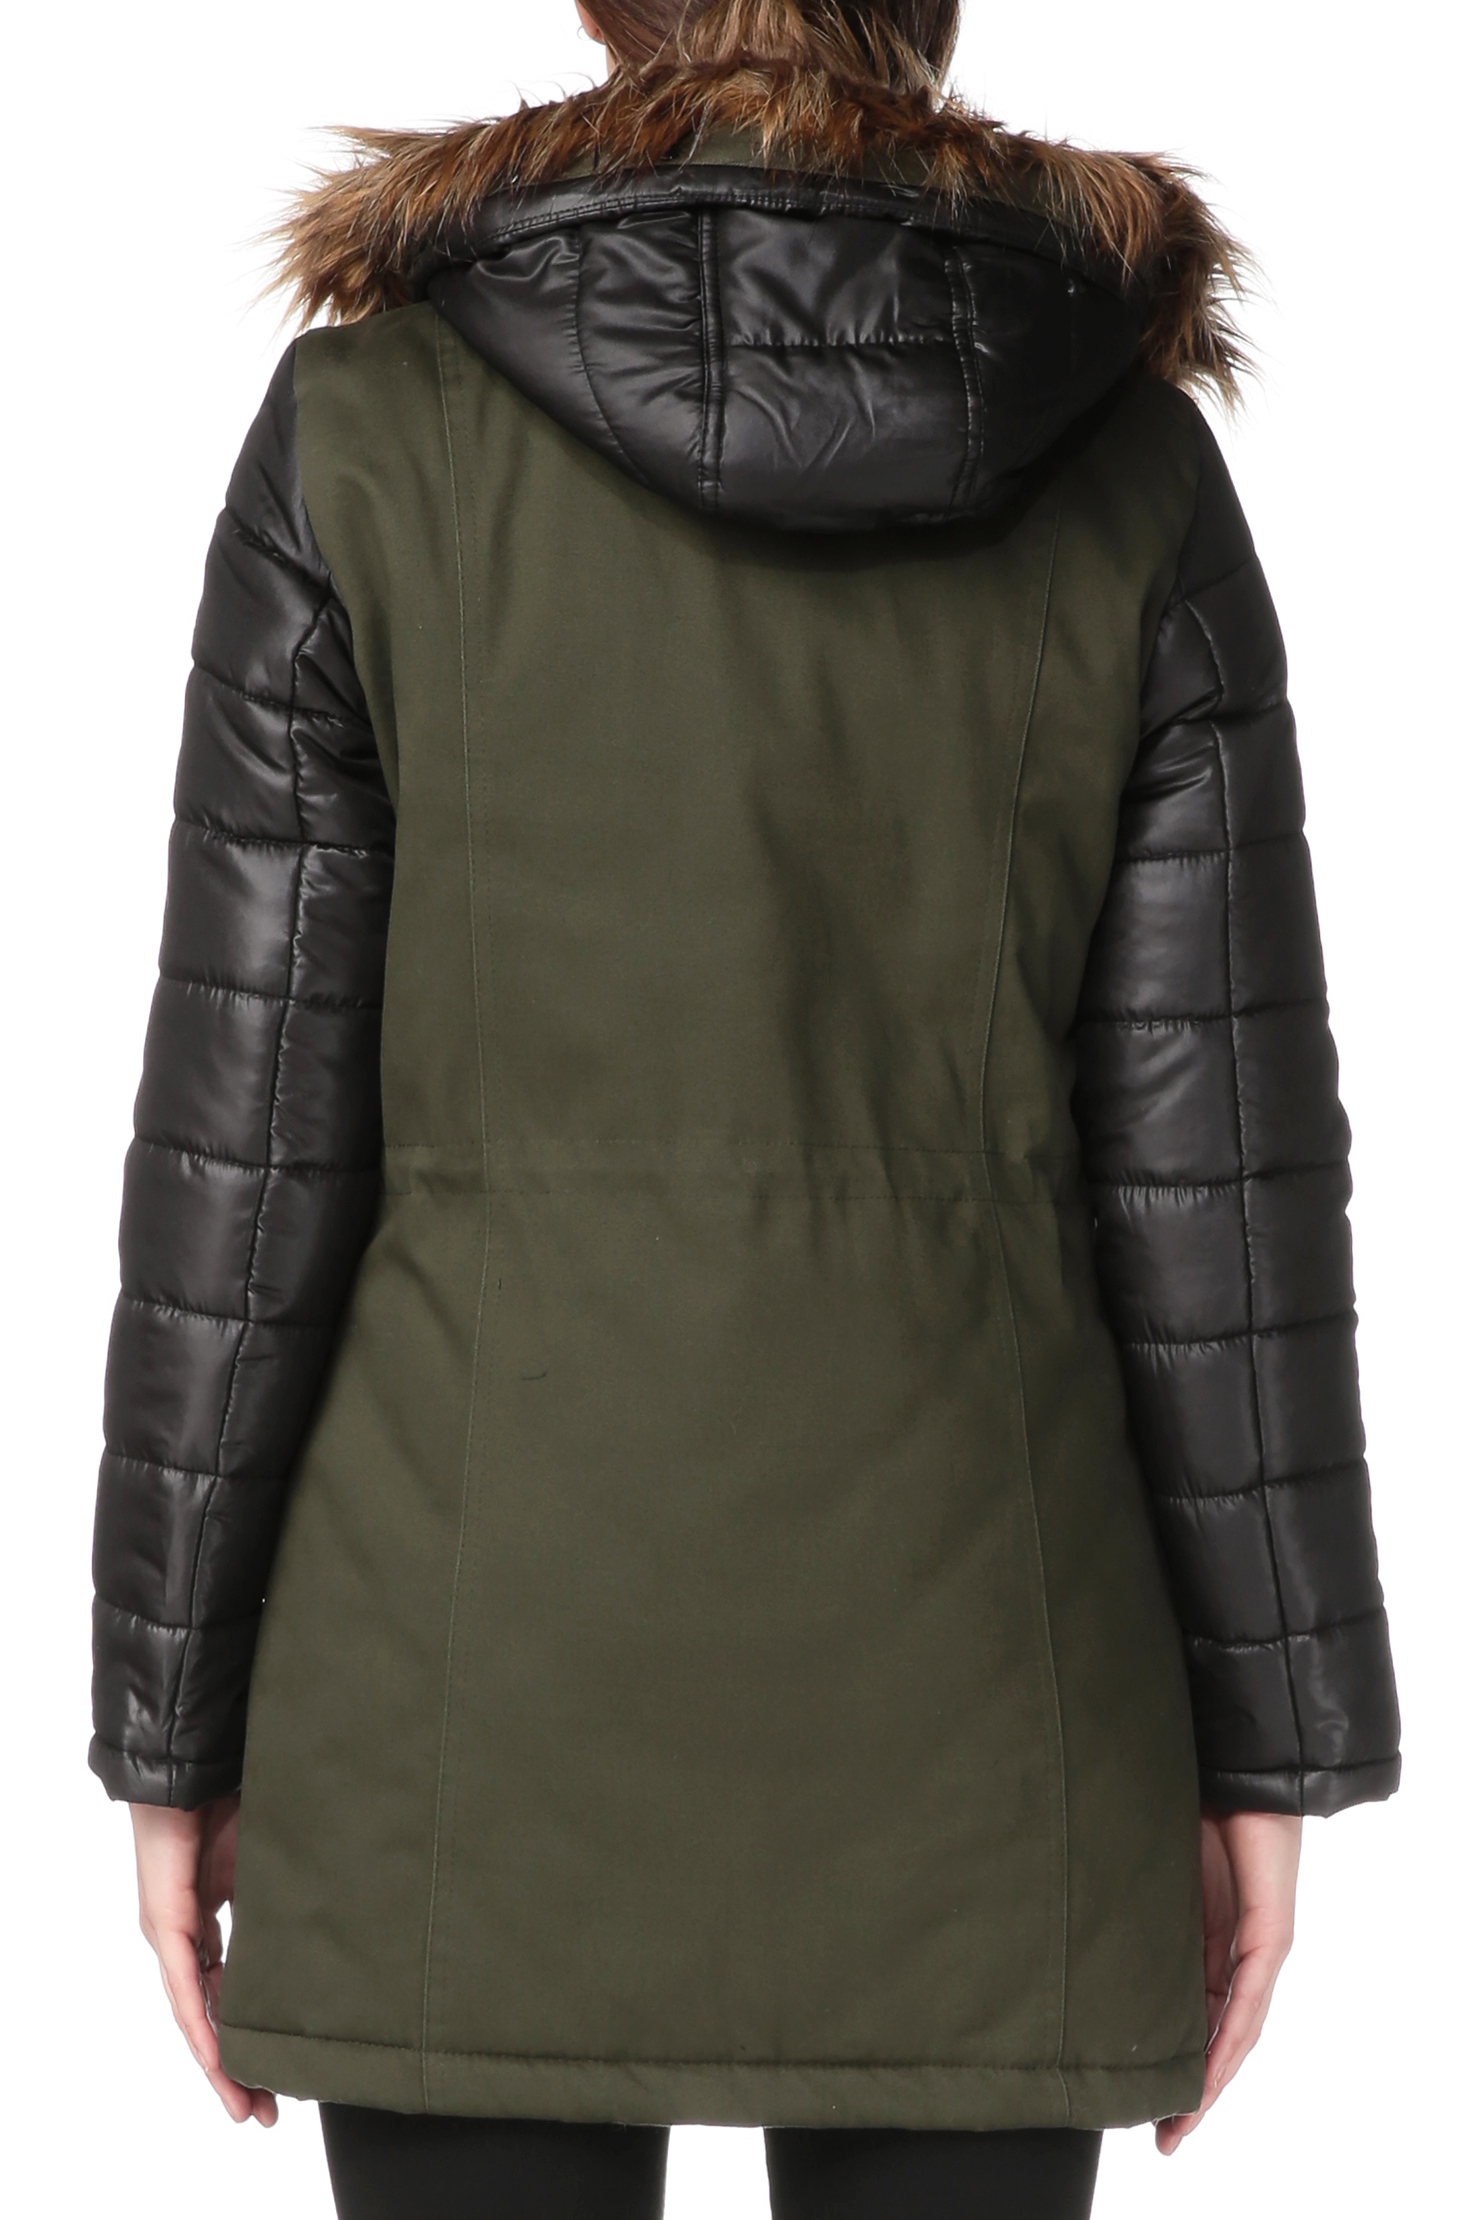 vero moda trench parka in green lyst. Black Bedroom Furniture Sets. Home Design Ideas